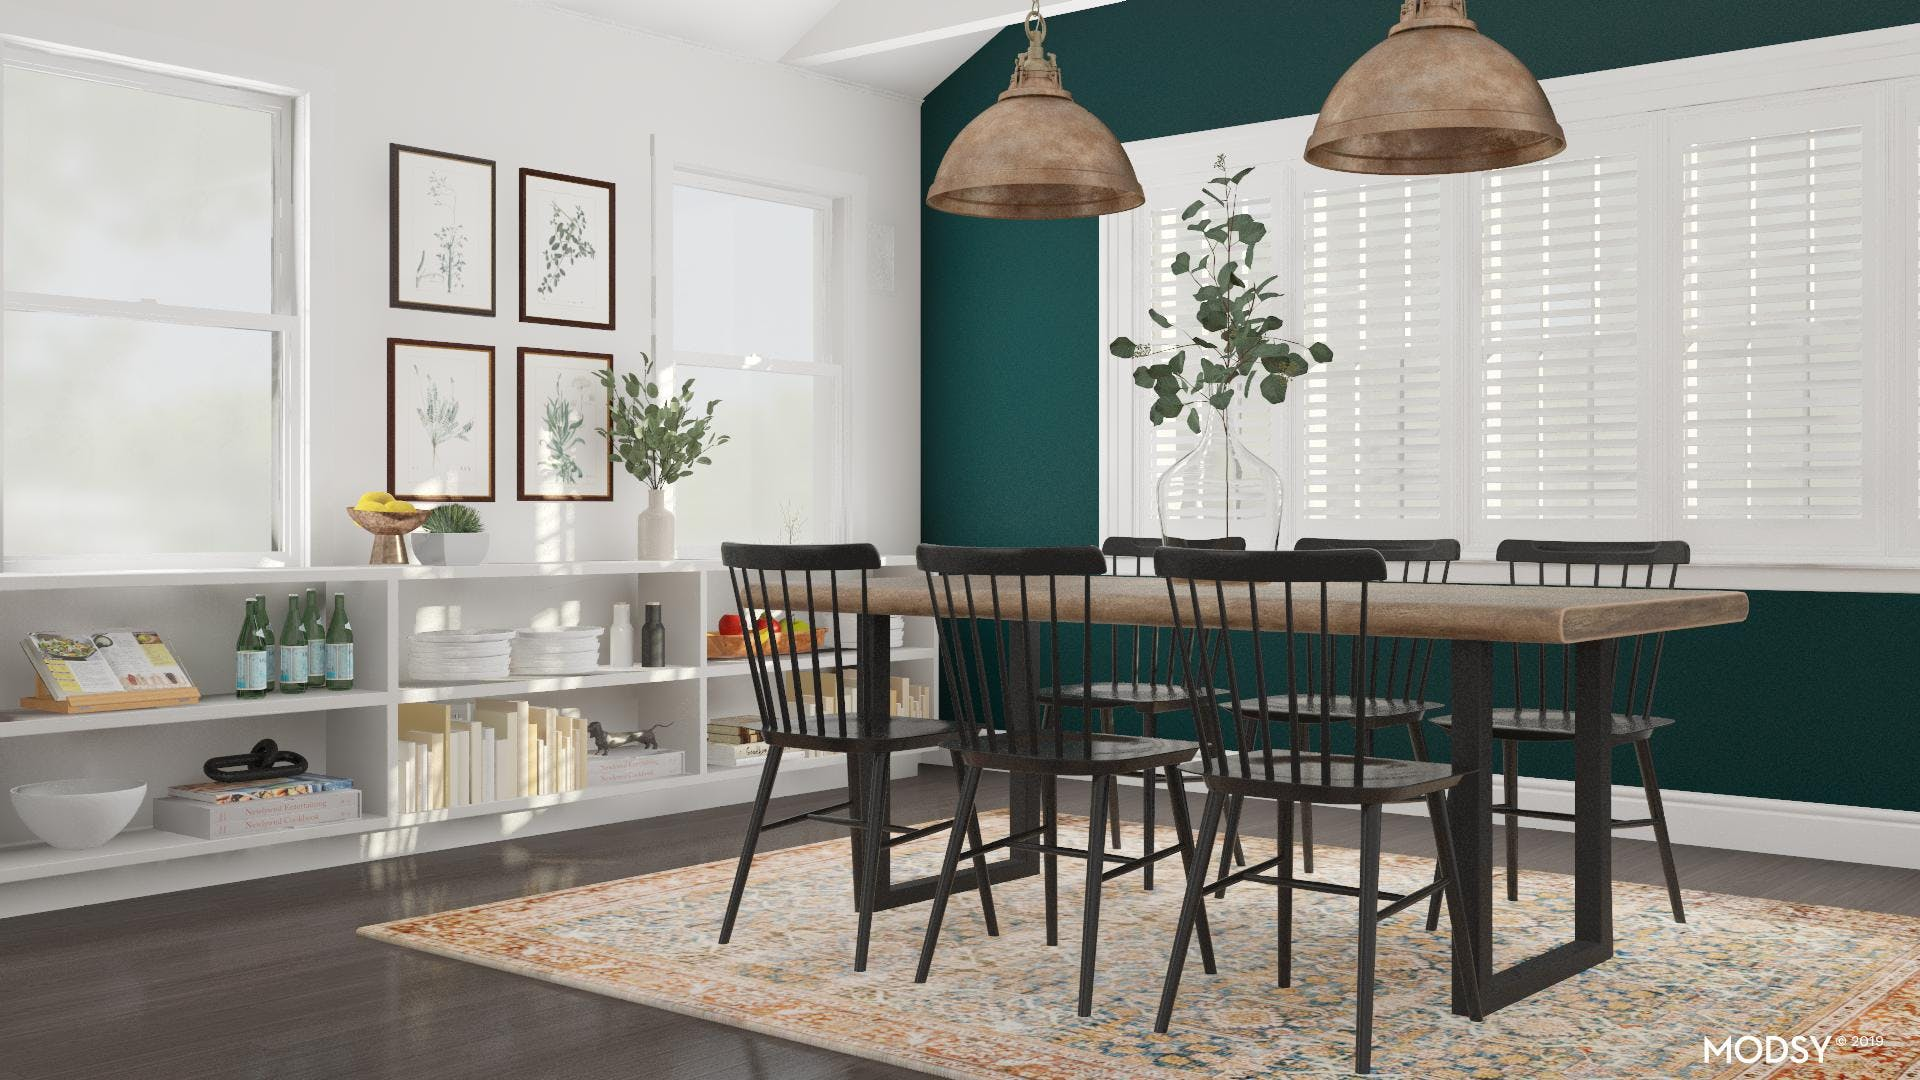 Bright Accent Ideas For A Modern Rustic Dining Room